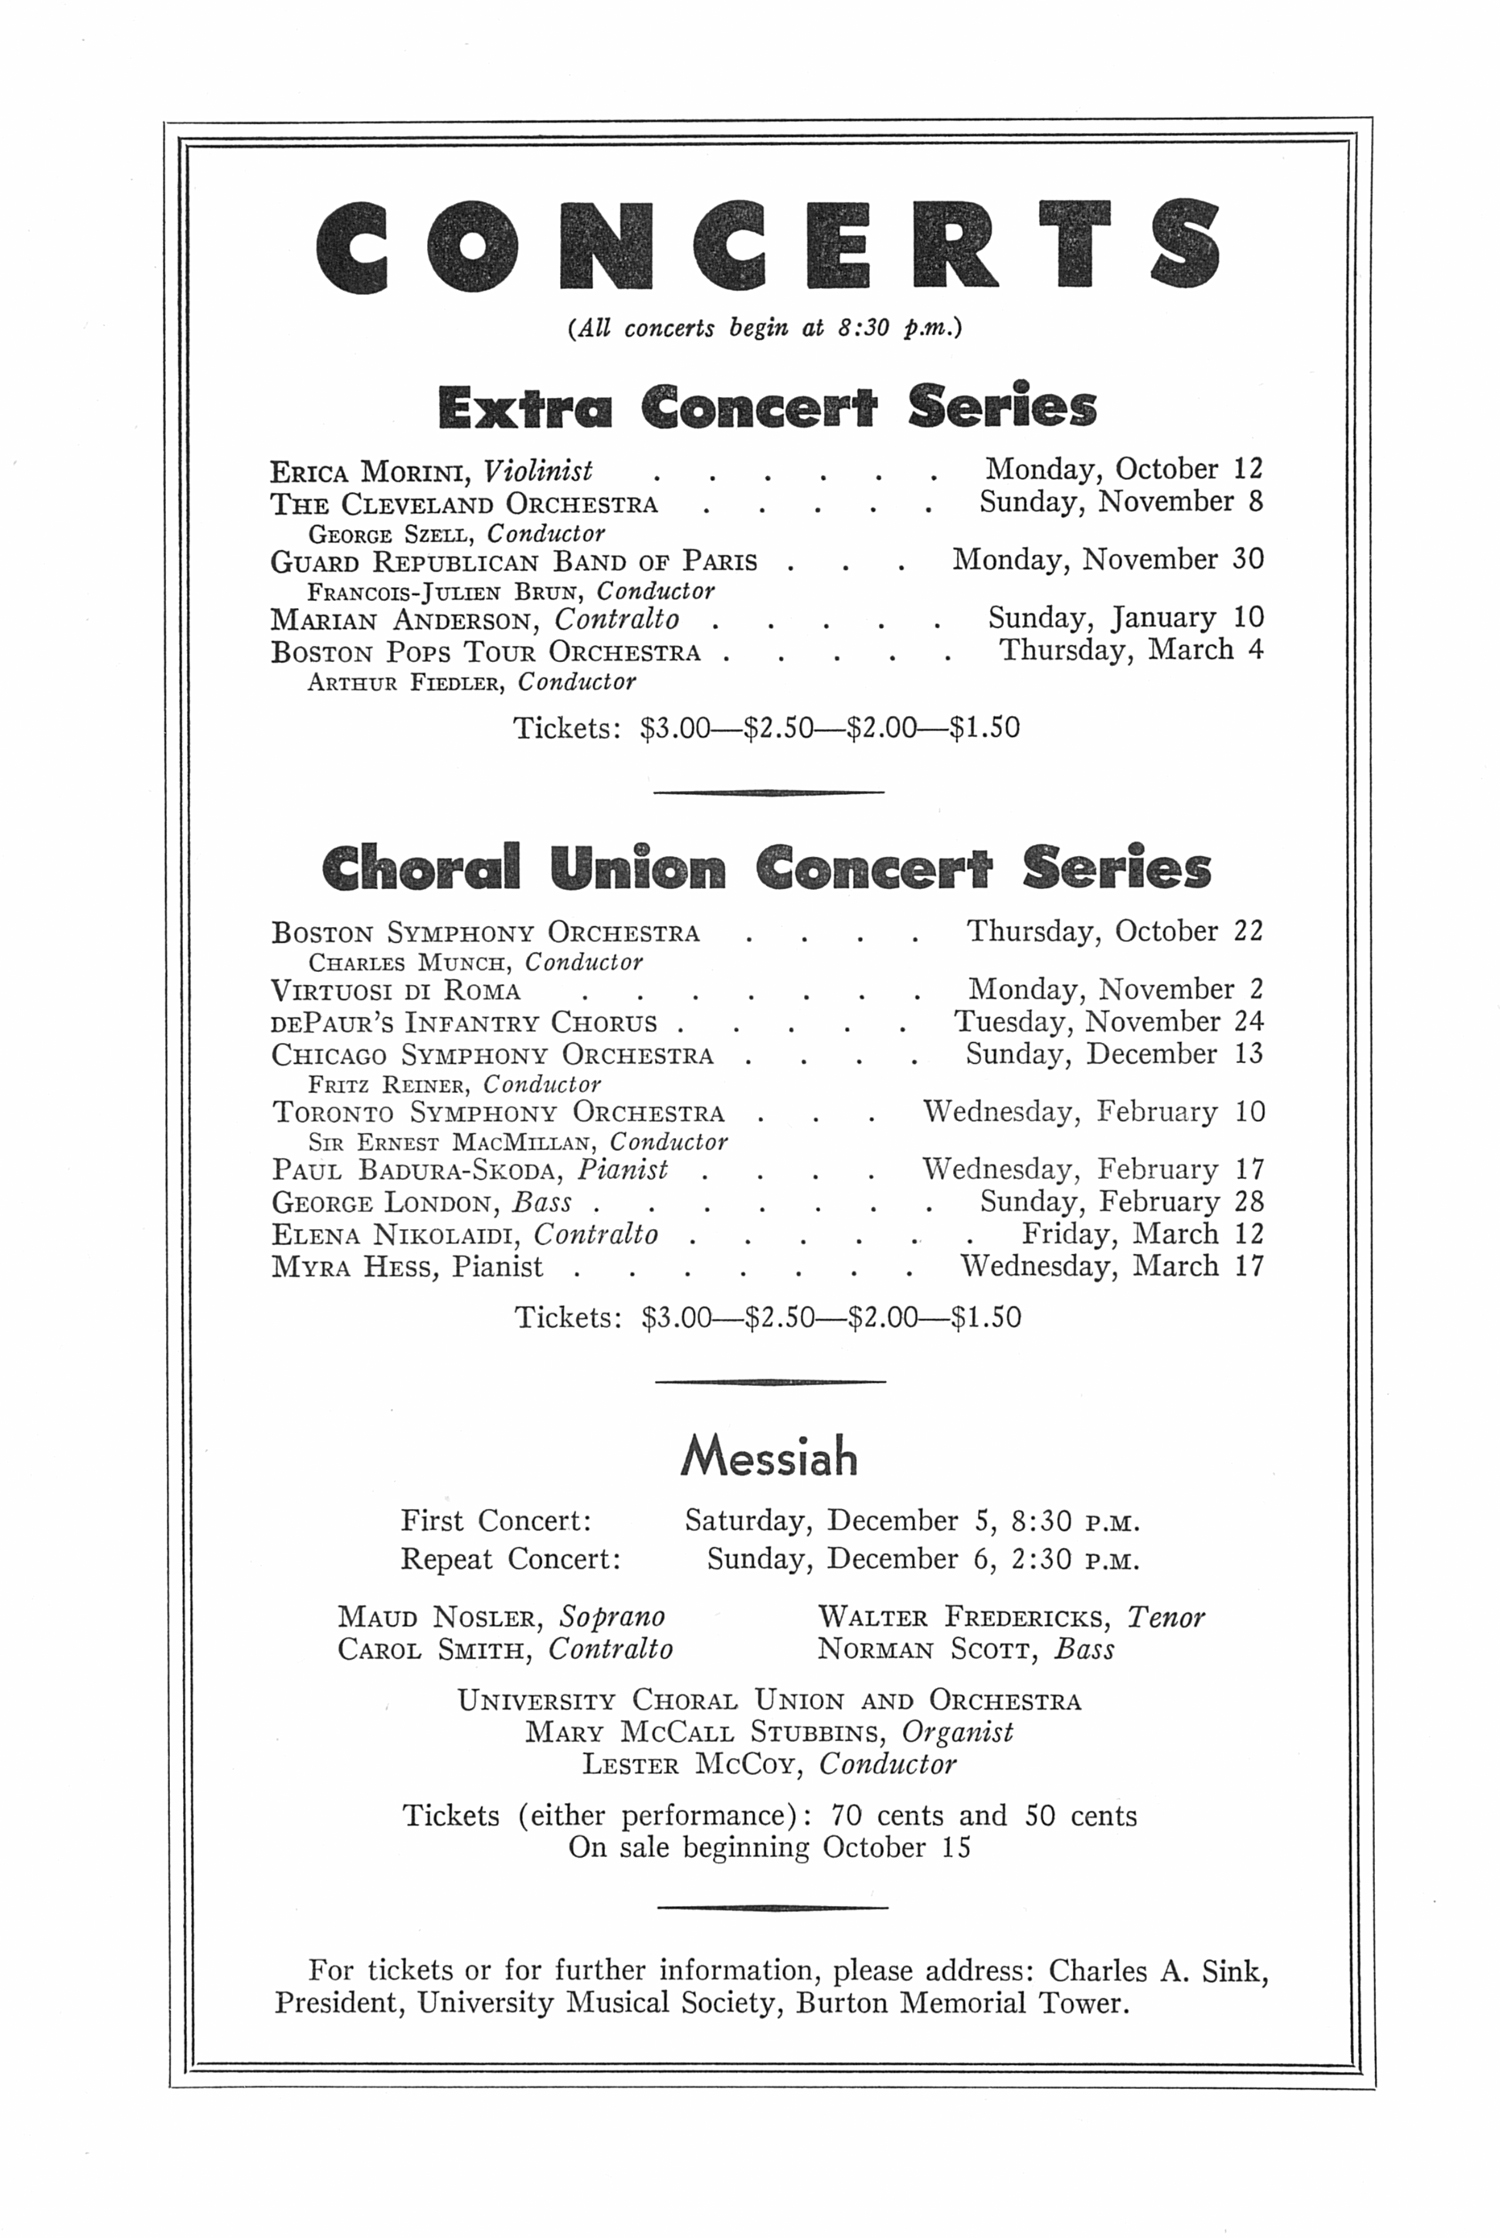 UMS Concert Program, October 7: Seventy-fifth Annual Choral Union Concert Series -- Roberta Peters image